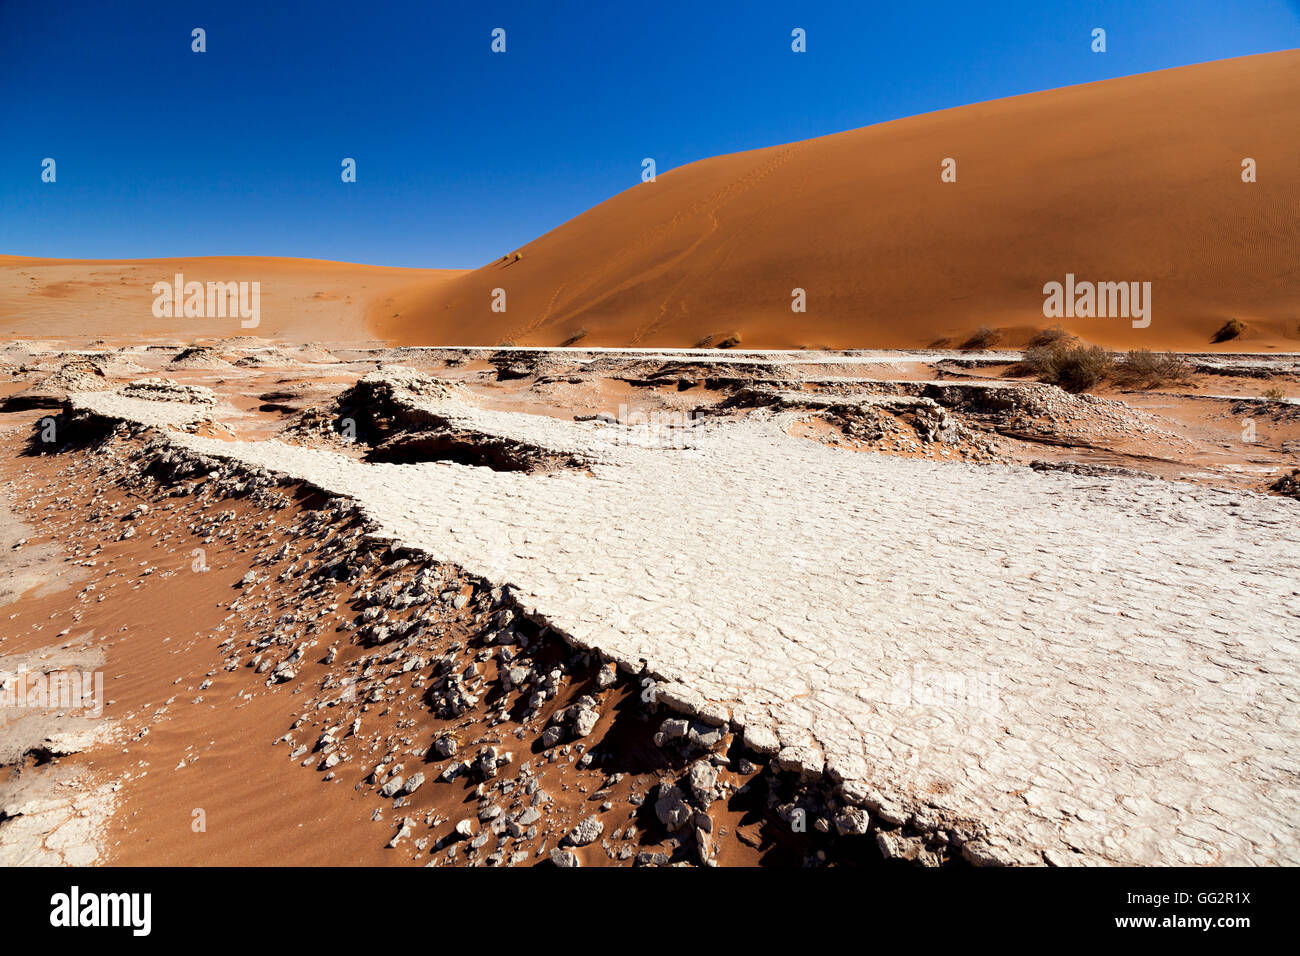 Sossusvlei Namibia Dried up river bed. - Stock Image